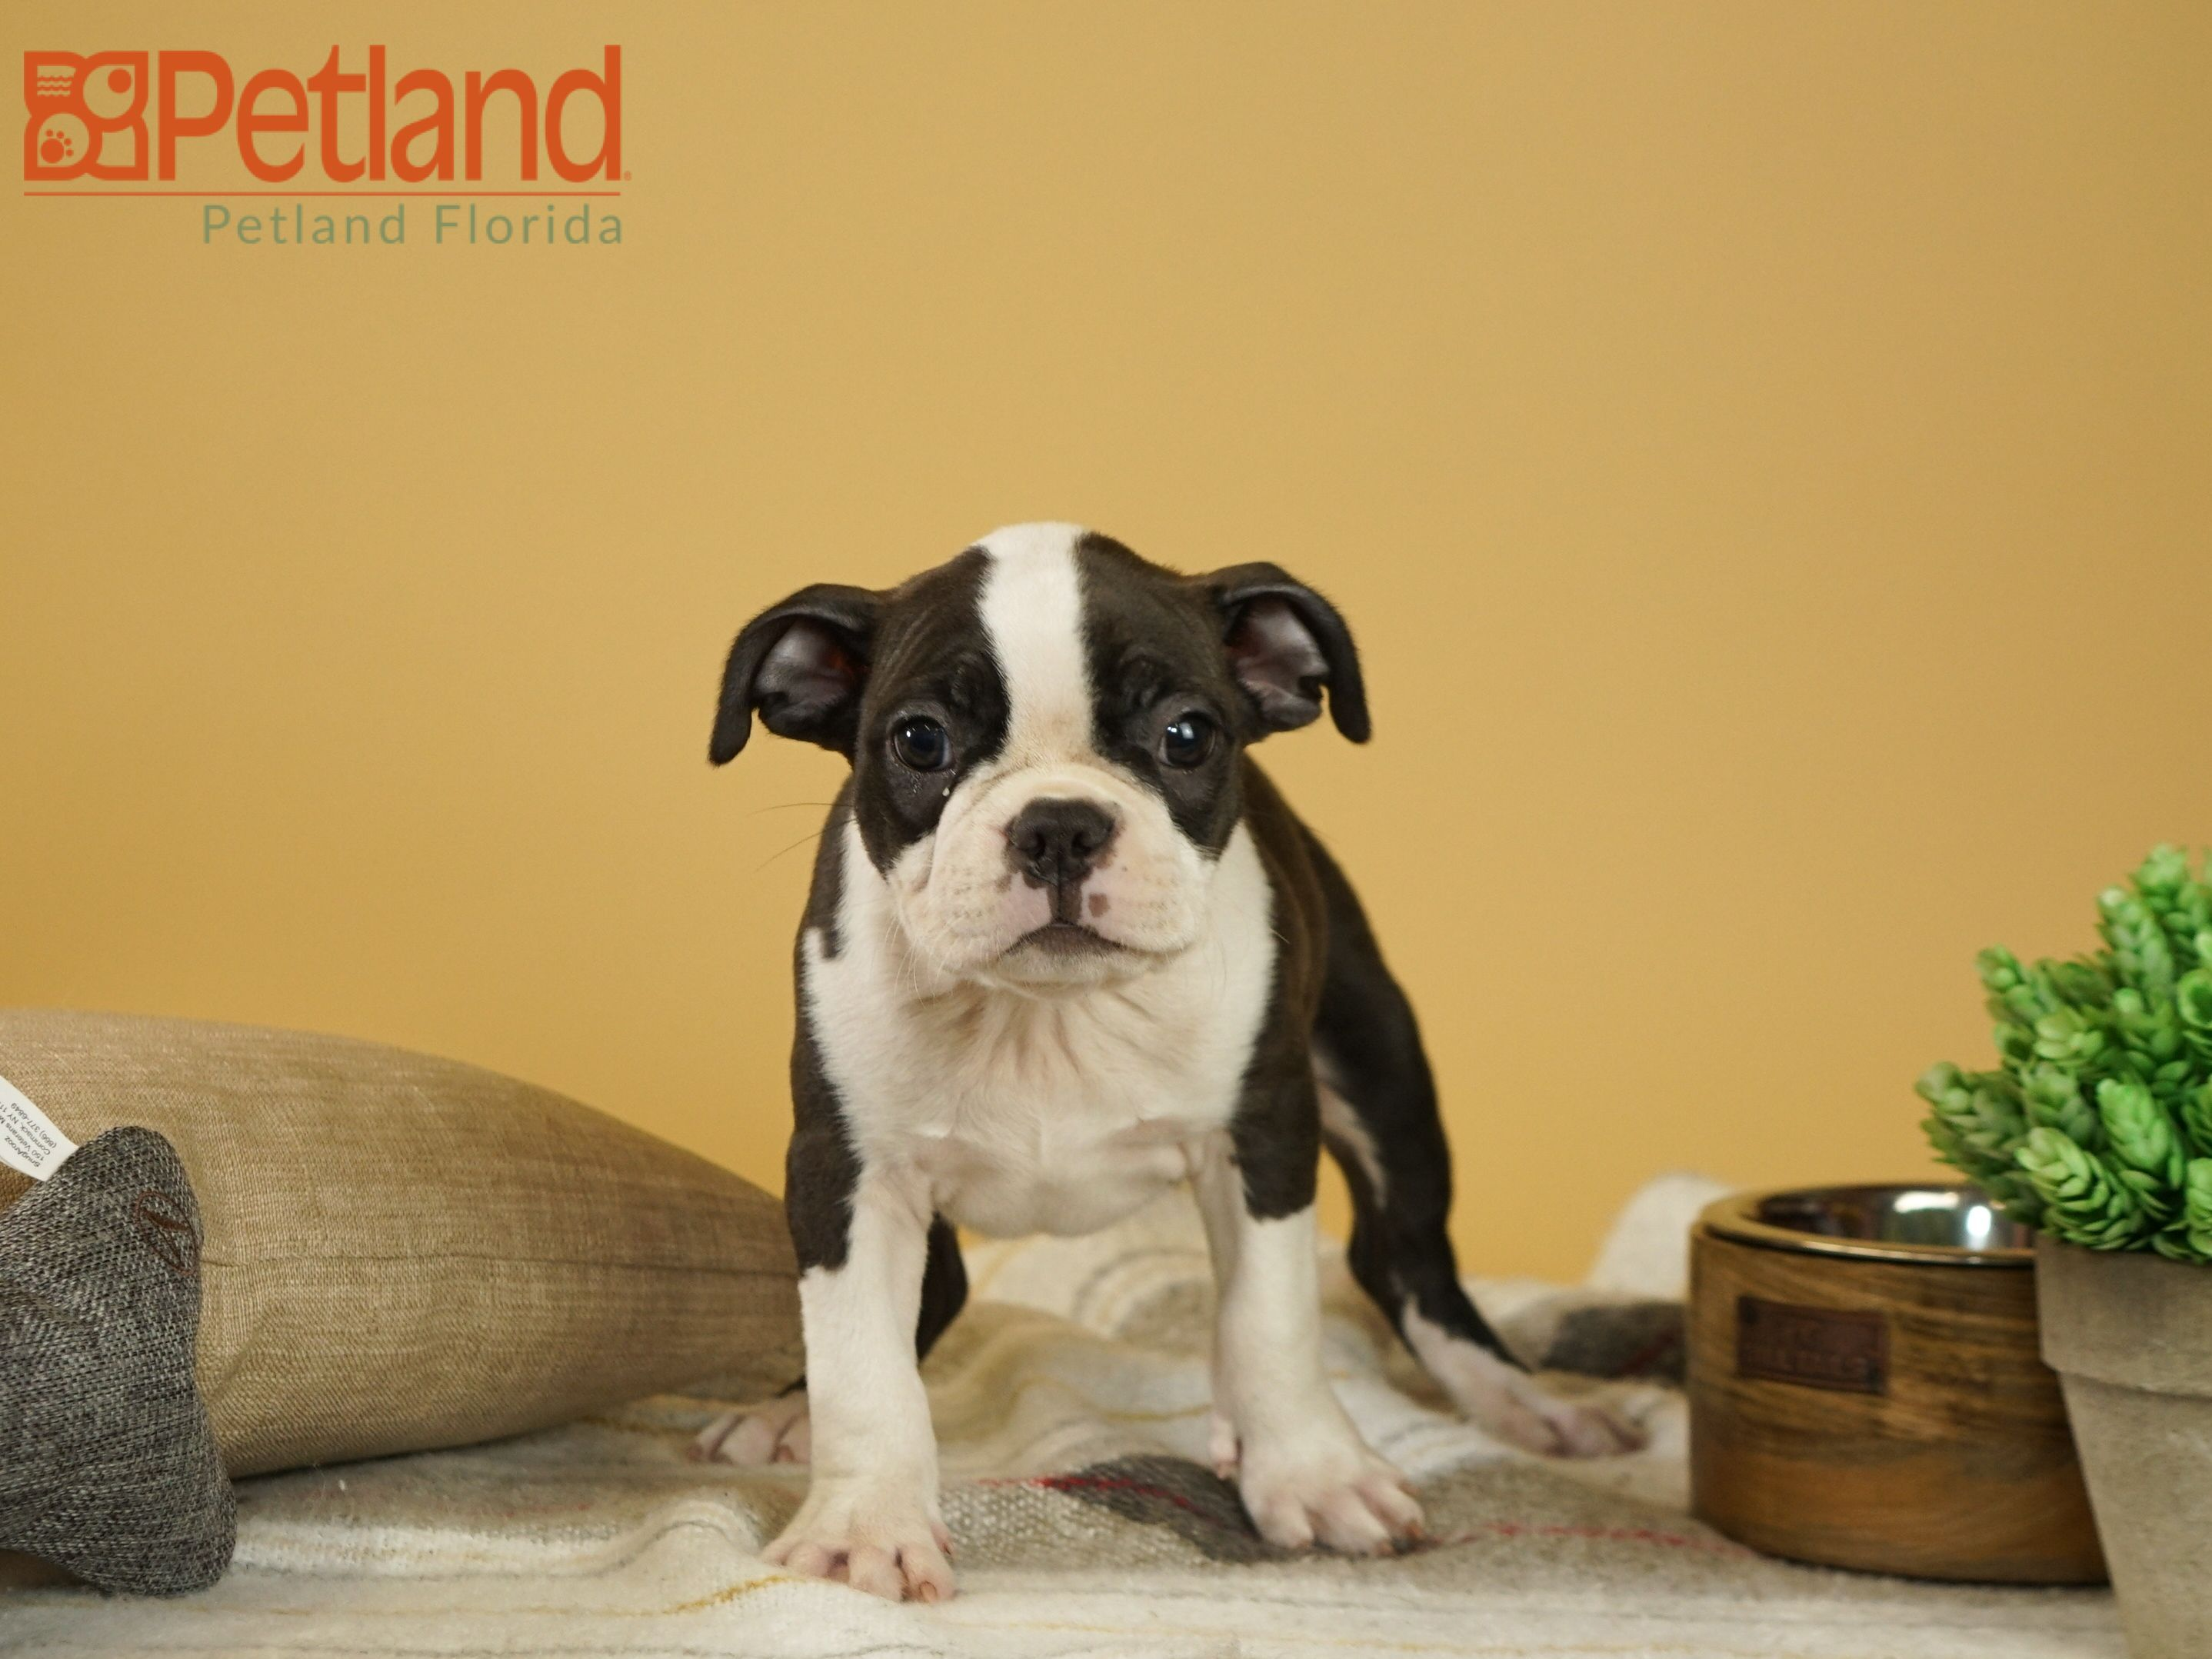 Puppies For Sale Puppy friends, Puppies, Boston terrier